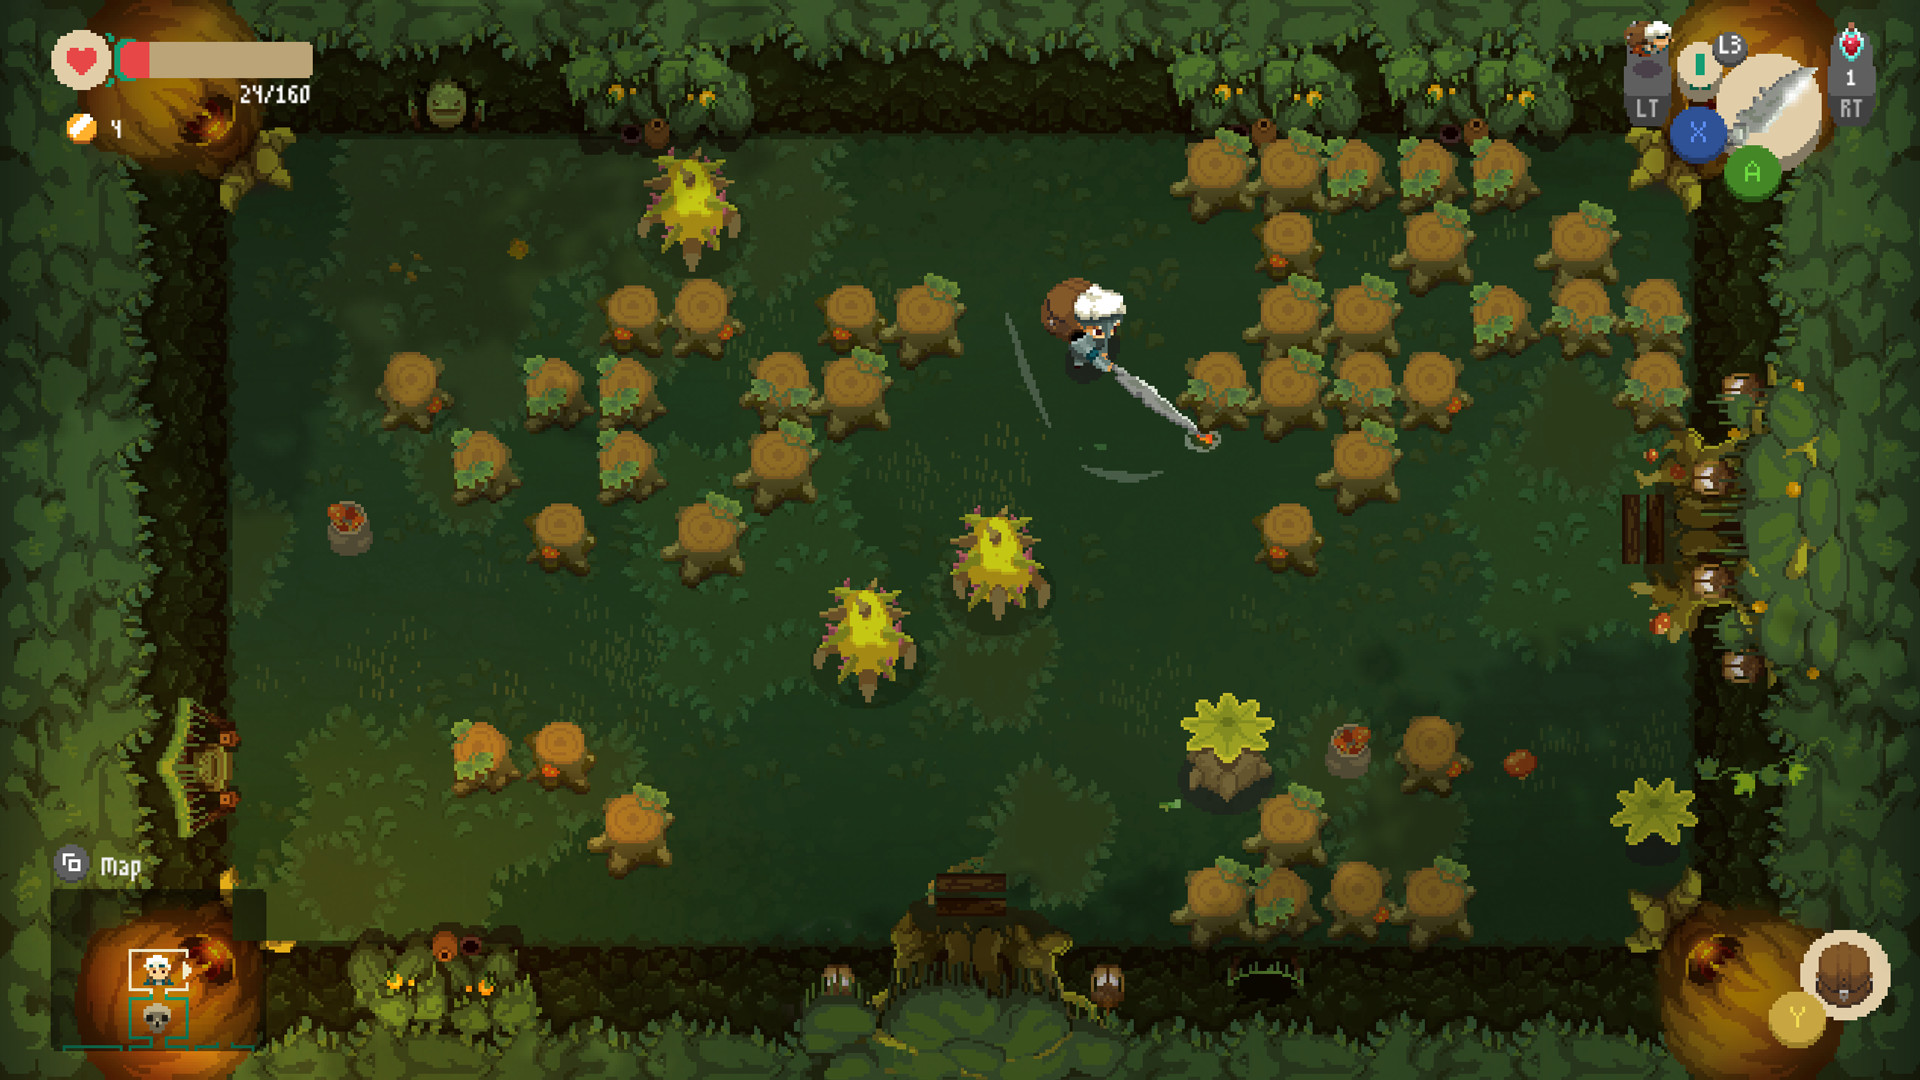 Indie Action RPG Moonlighter Launches In May RPG Site